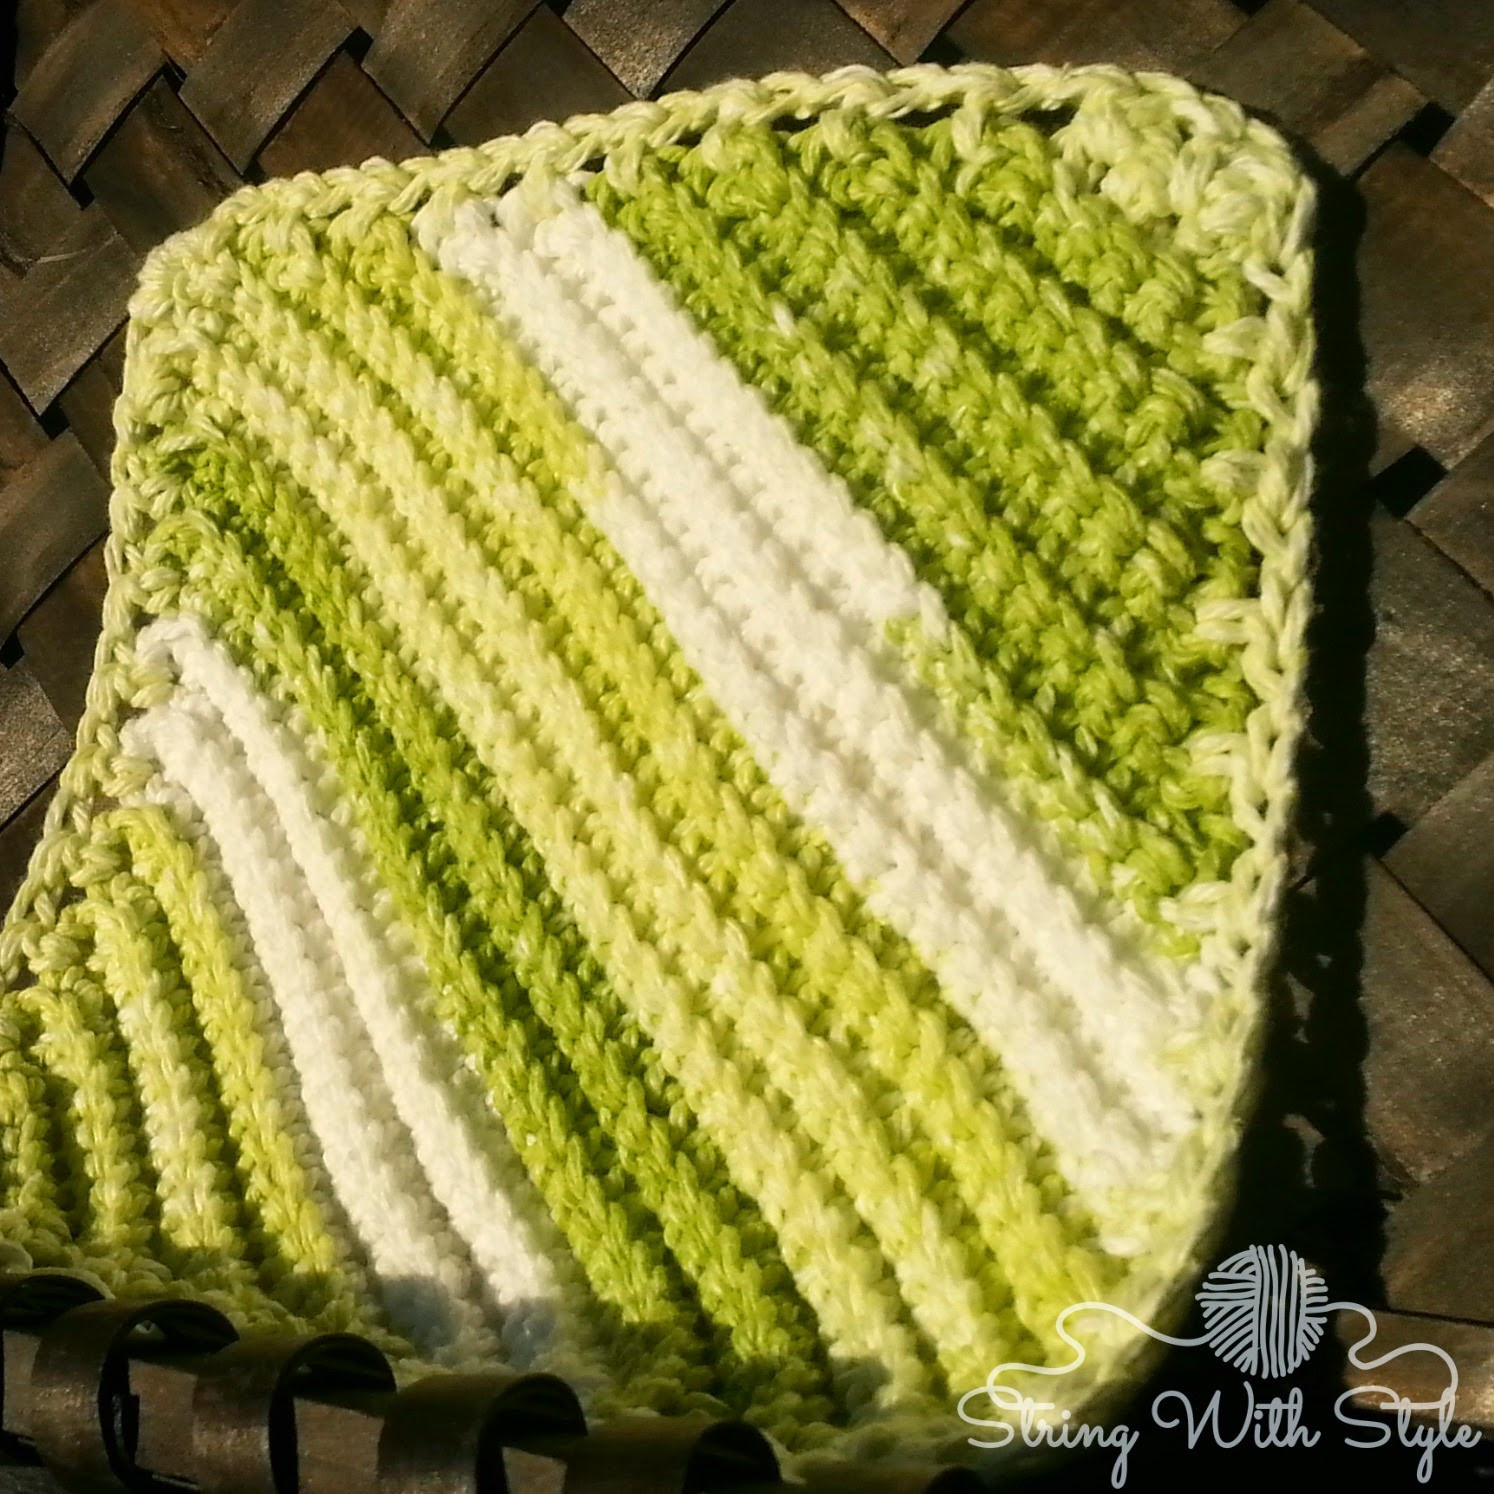 Awesome String with Style Knit Me Knot Dishcloth Knit Scrubby Patterns Of Top 40 Photos Knit Scrubby Patterns